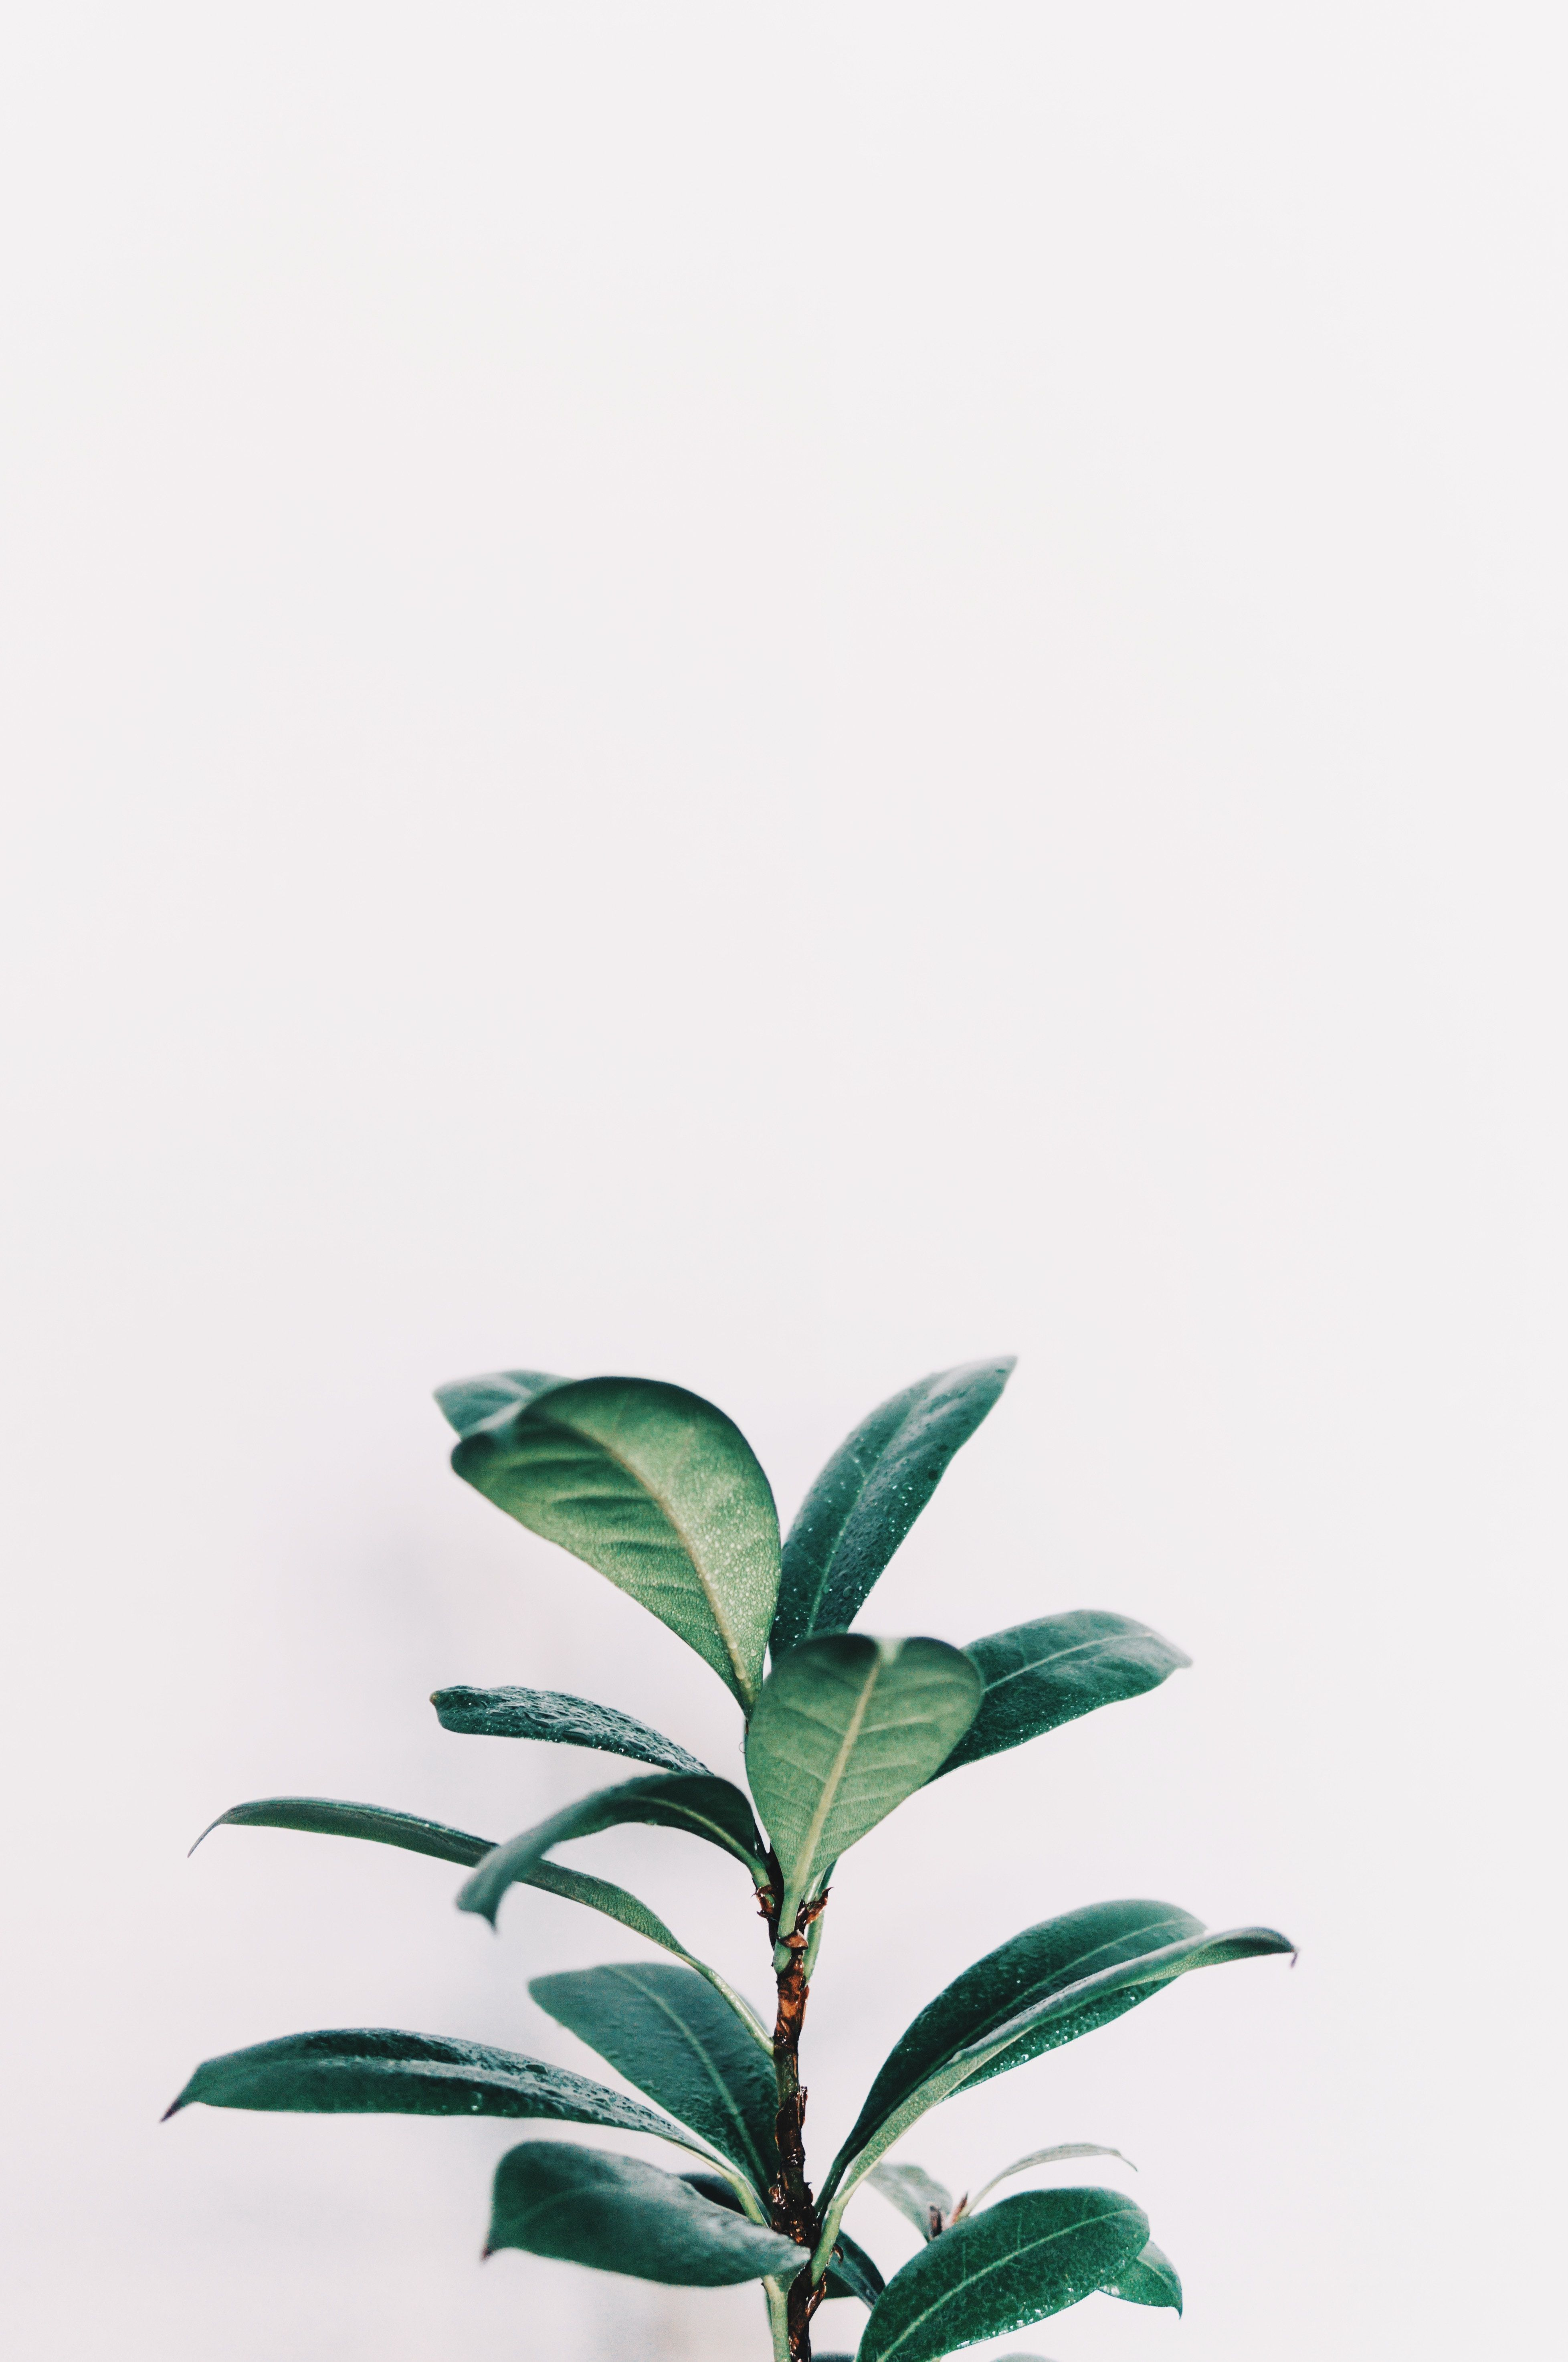 Plant Aesthetic Iphone Wallpapers Top Free Plant Aesthetic Iphone Backgrounds Wallpaperaccess